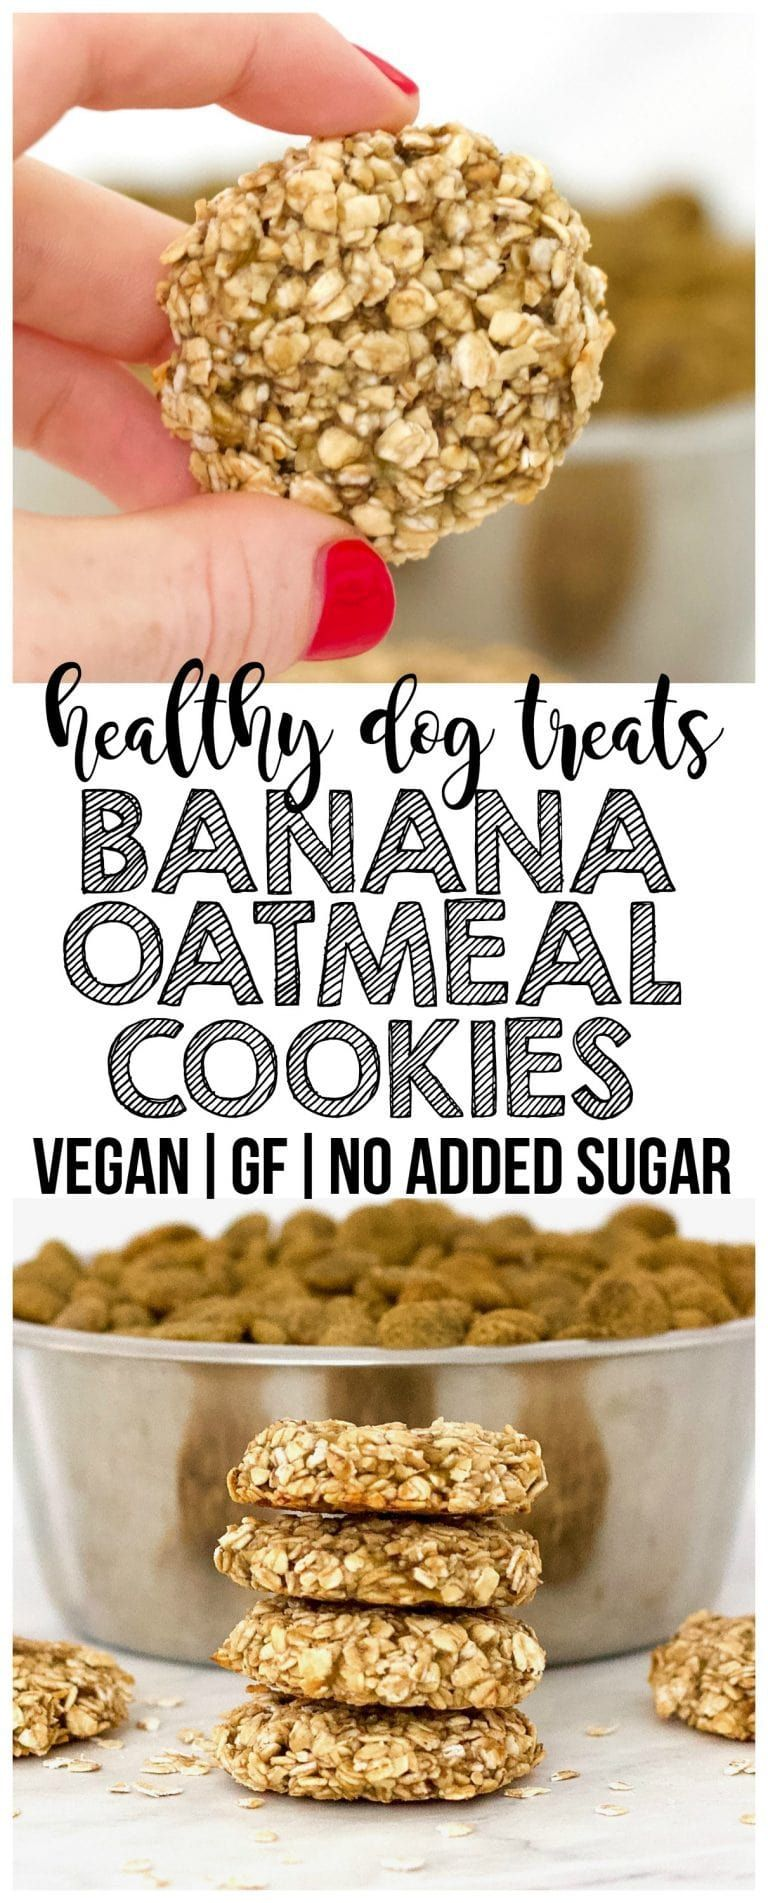 Banana Oatmeal Cookies For Dogs Dog Biscuit Recipes Dog Cookie